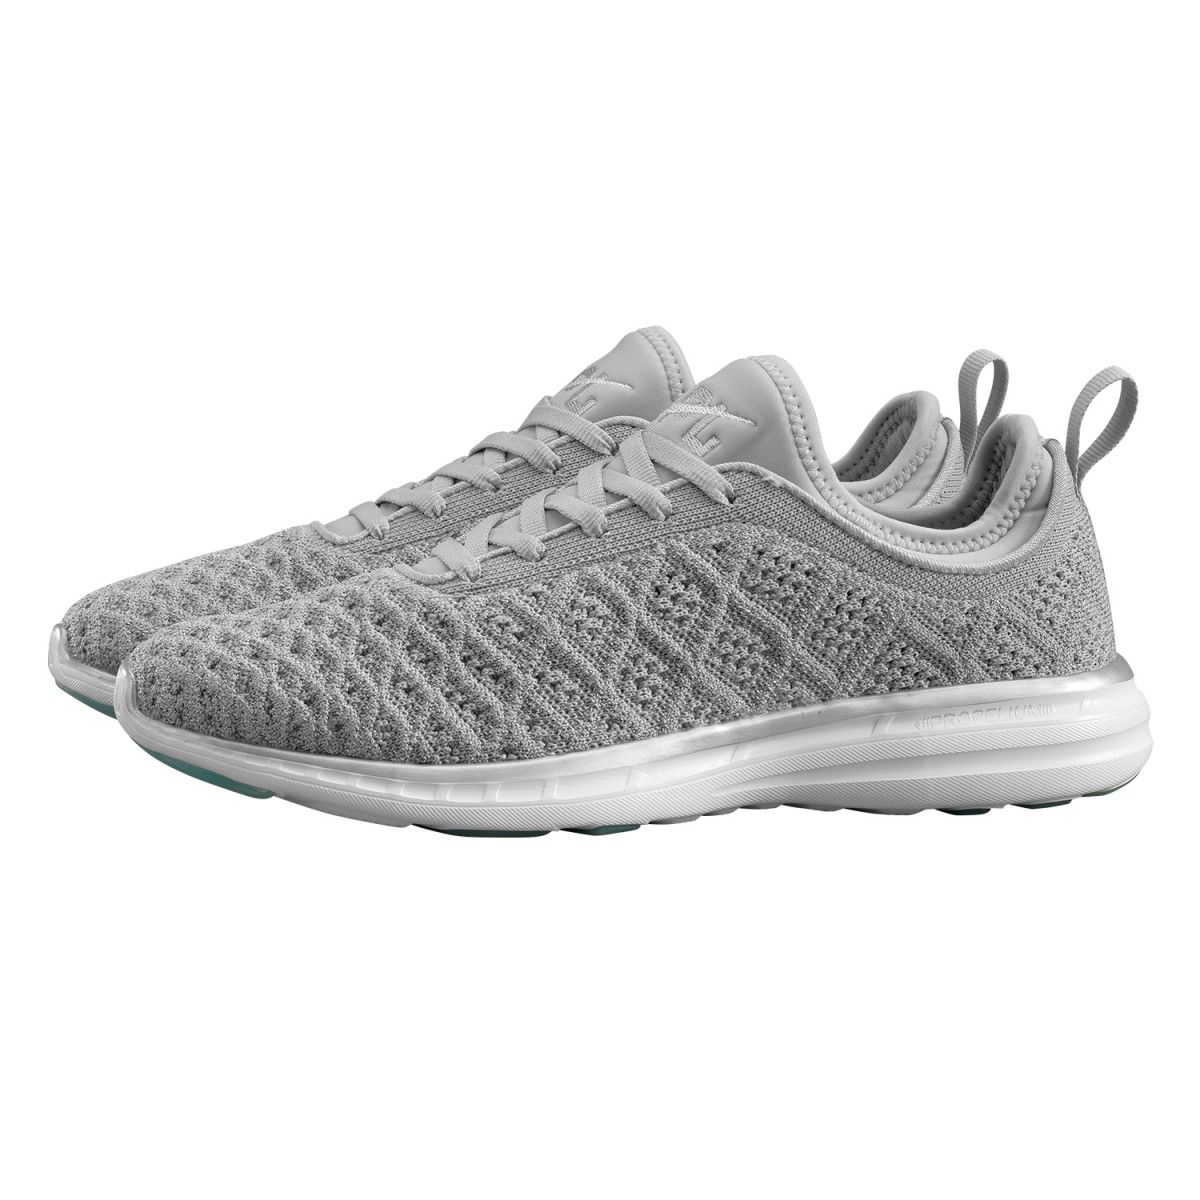 APL Women's Running Shoes TechLoom Phantom Metallic Silver/Cosmic Grey